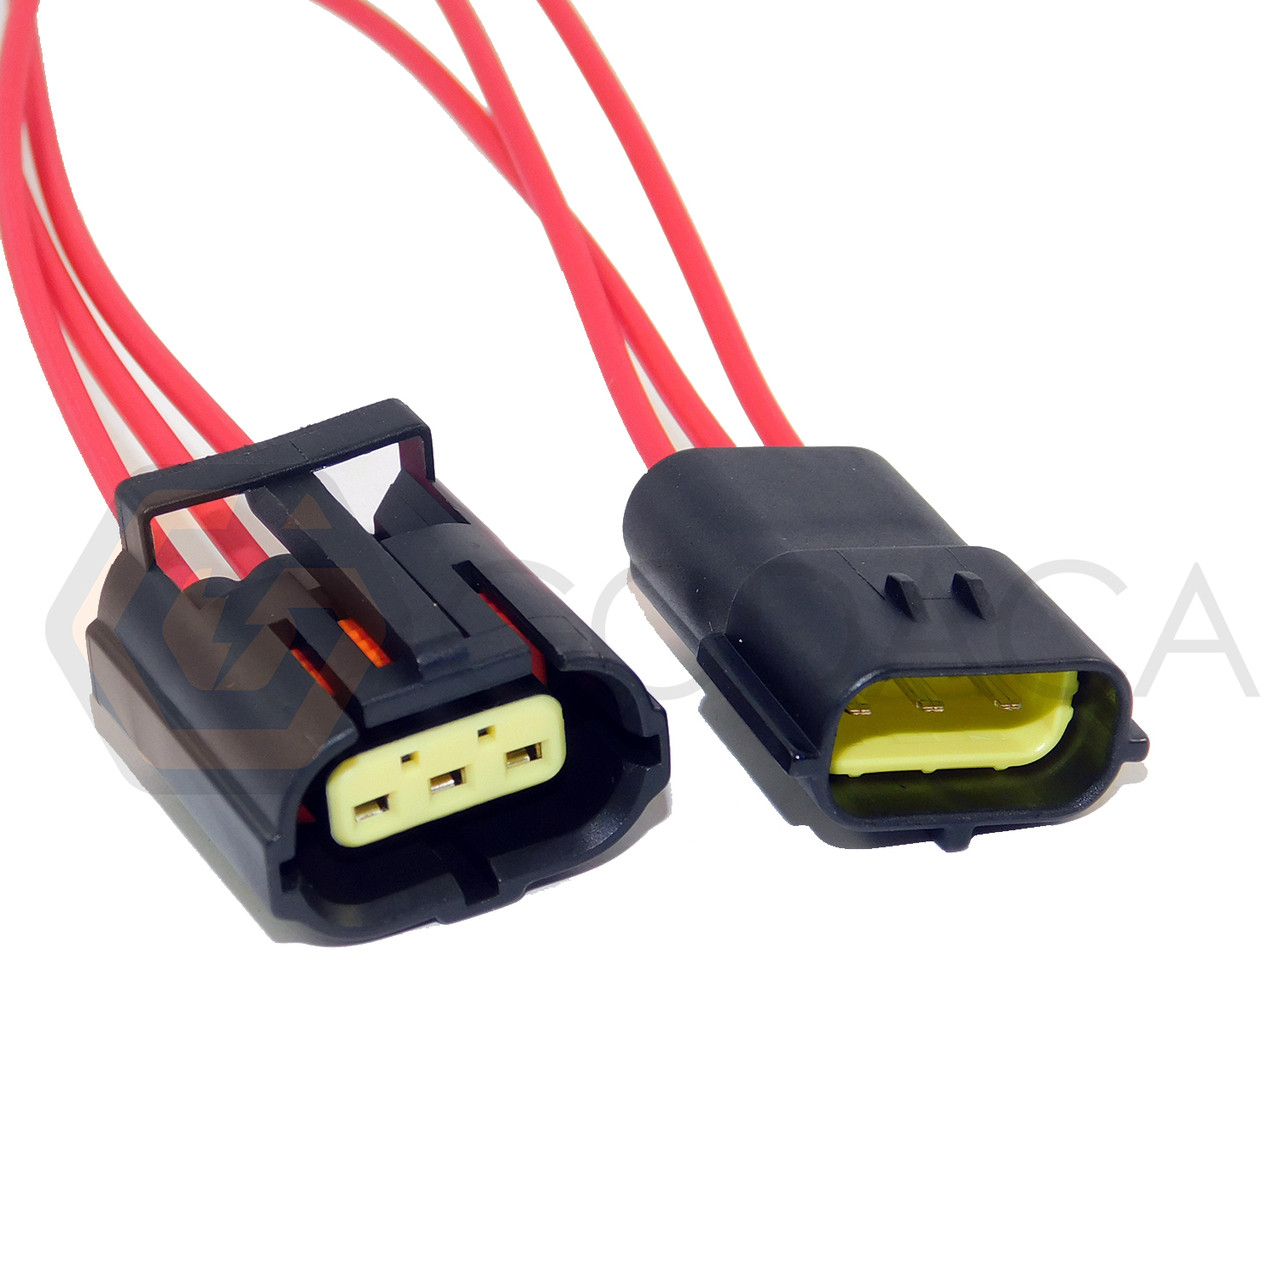 hight resolution of 1x female and male connector 3 way for ford inertia wpt 414 godaca llc